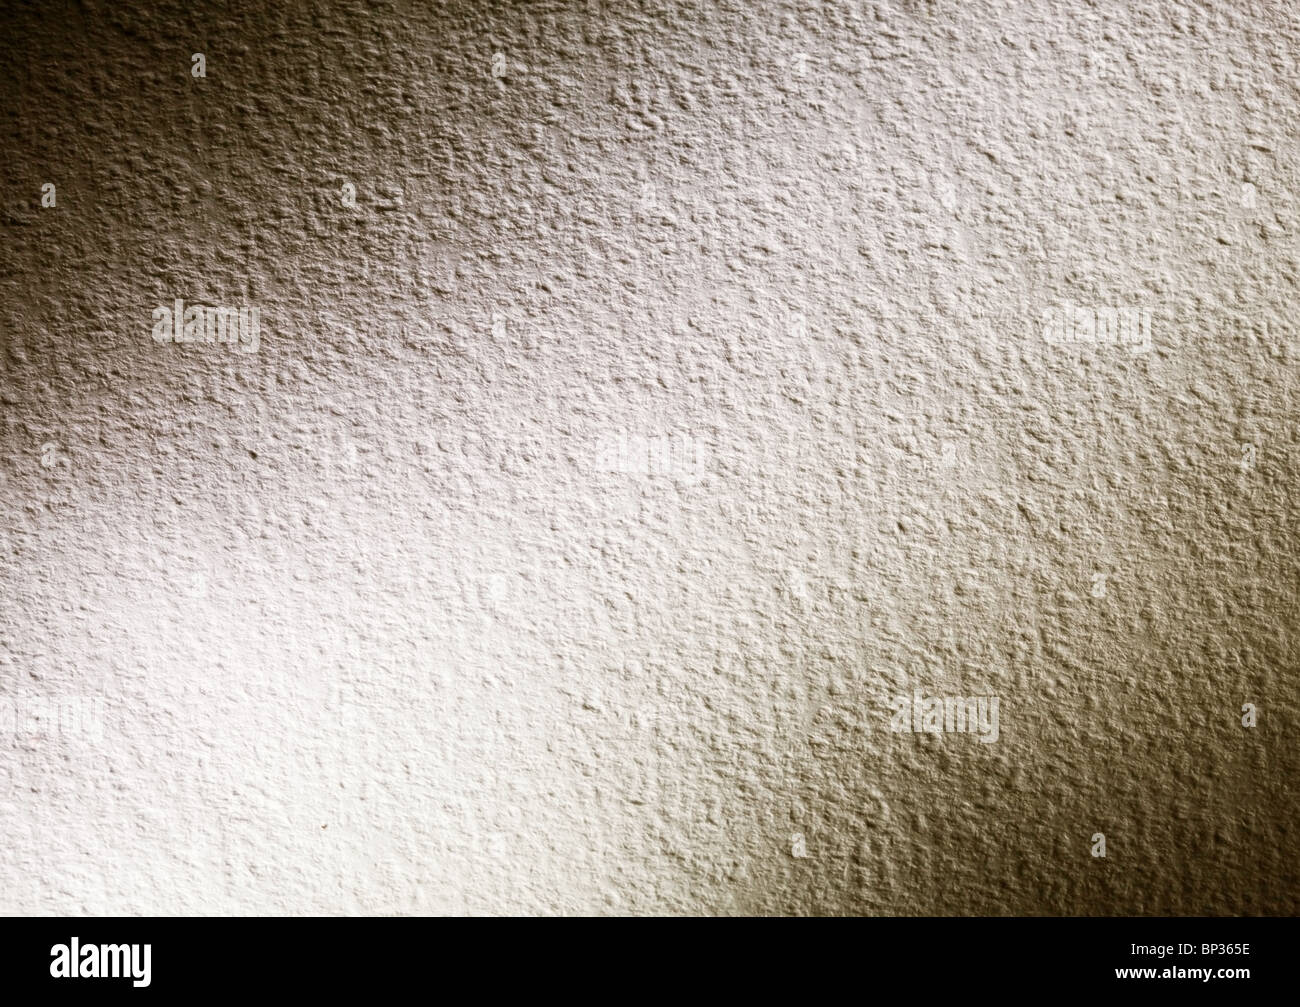 Contrasting texture of watercolor paper with dark corners. - Stock Image